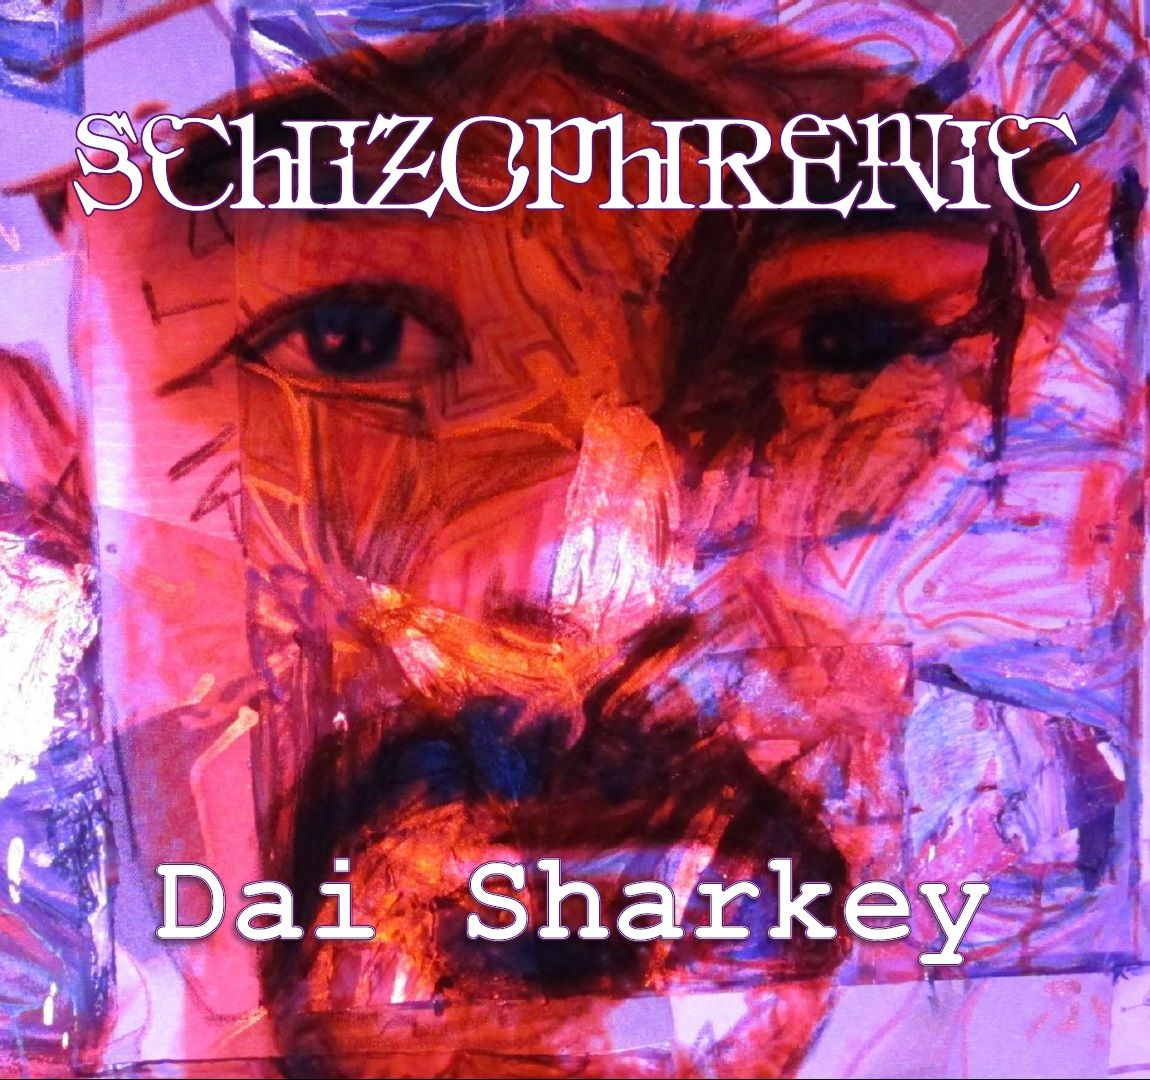 my Schizophrenic album cover painted by Sheree Murphy